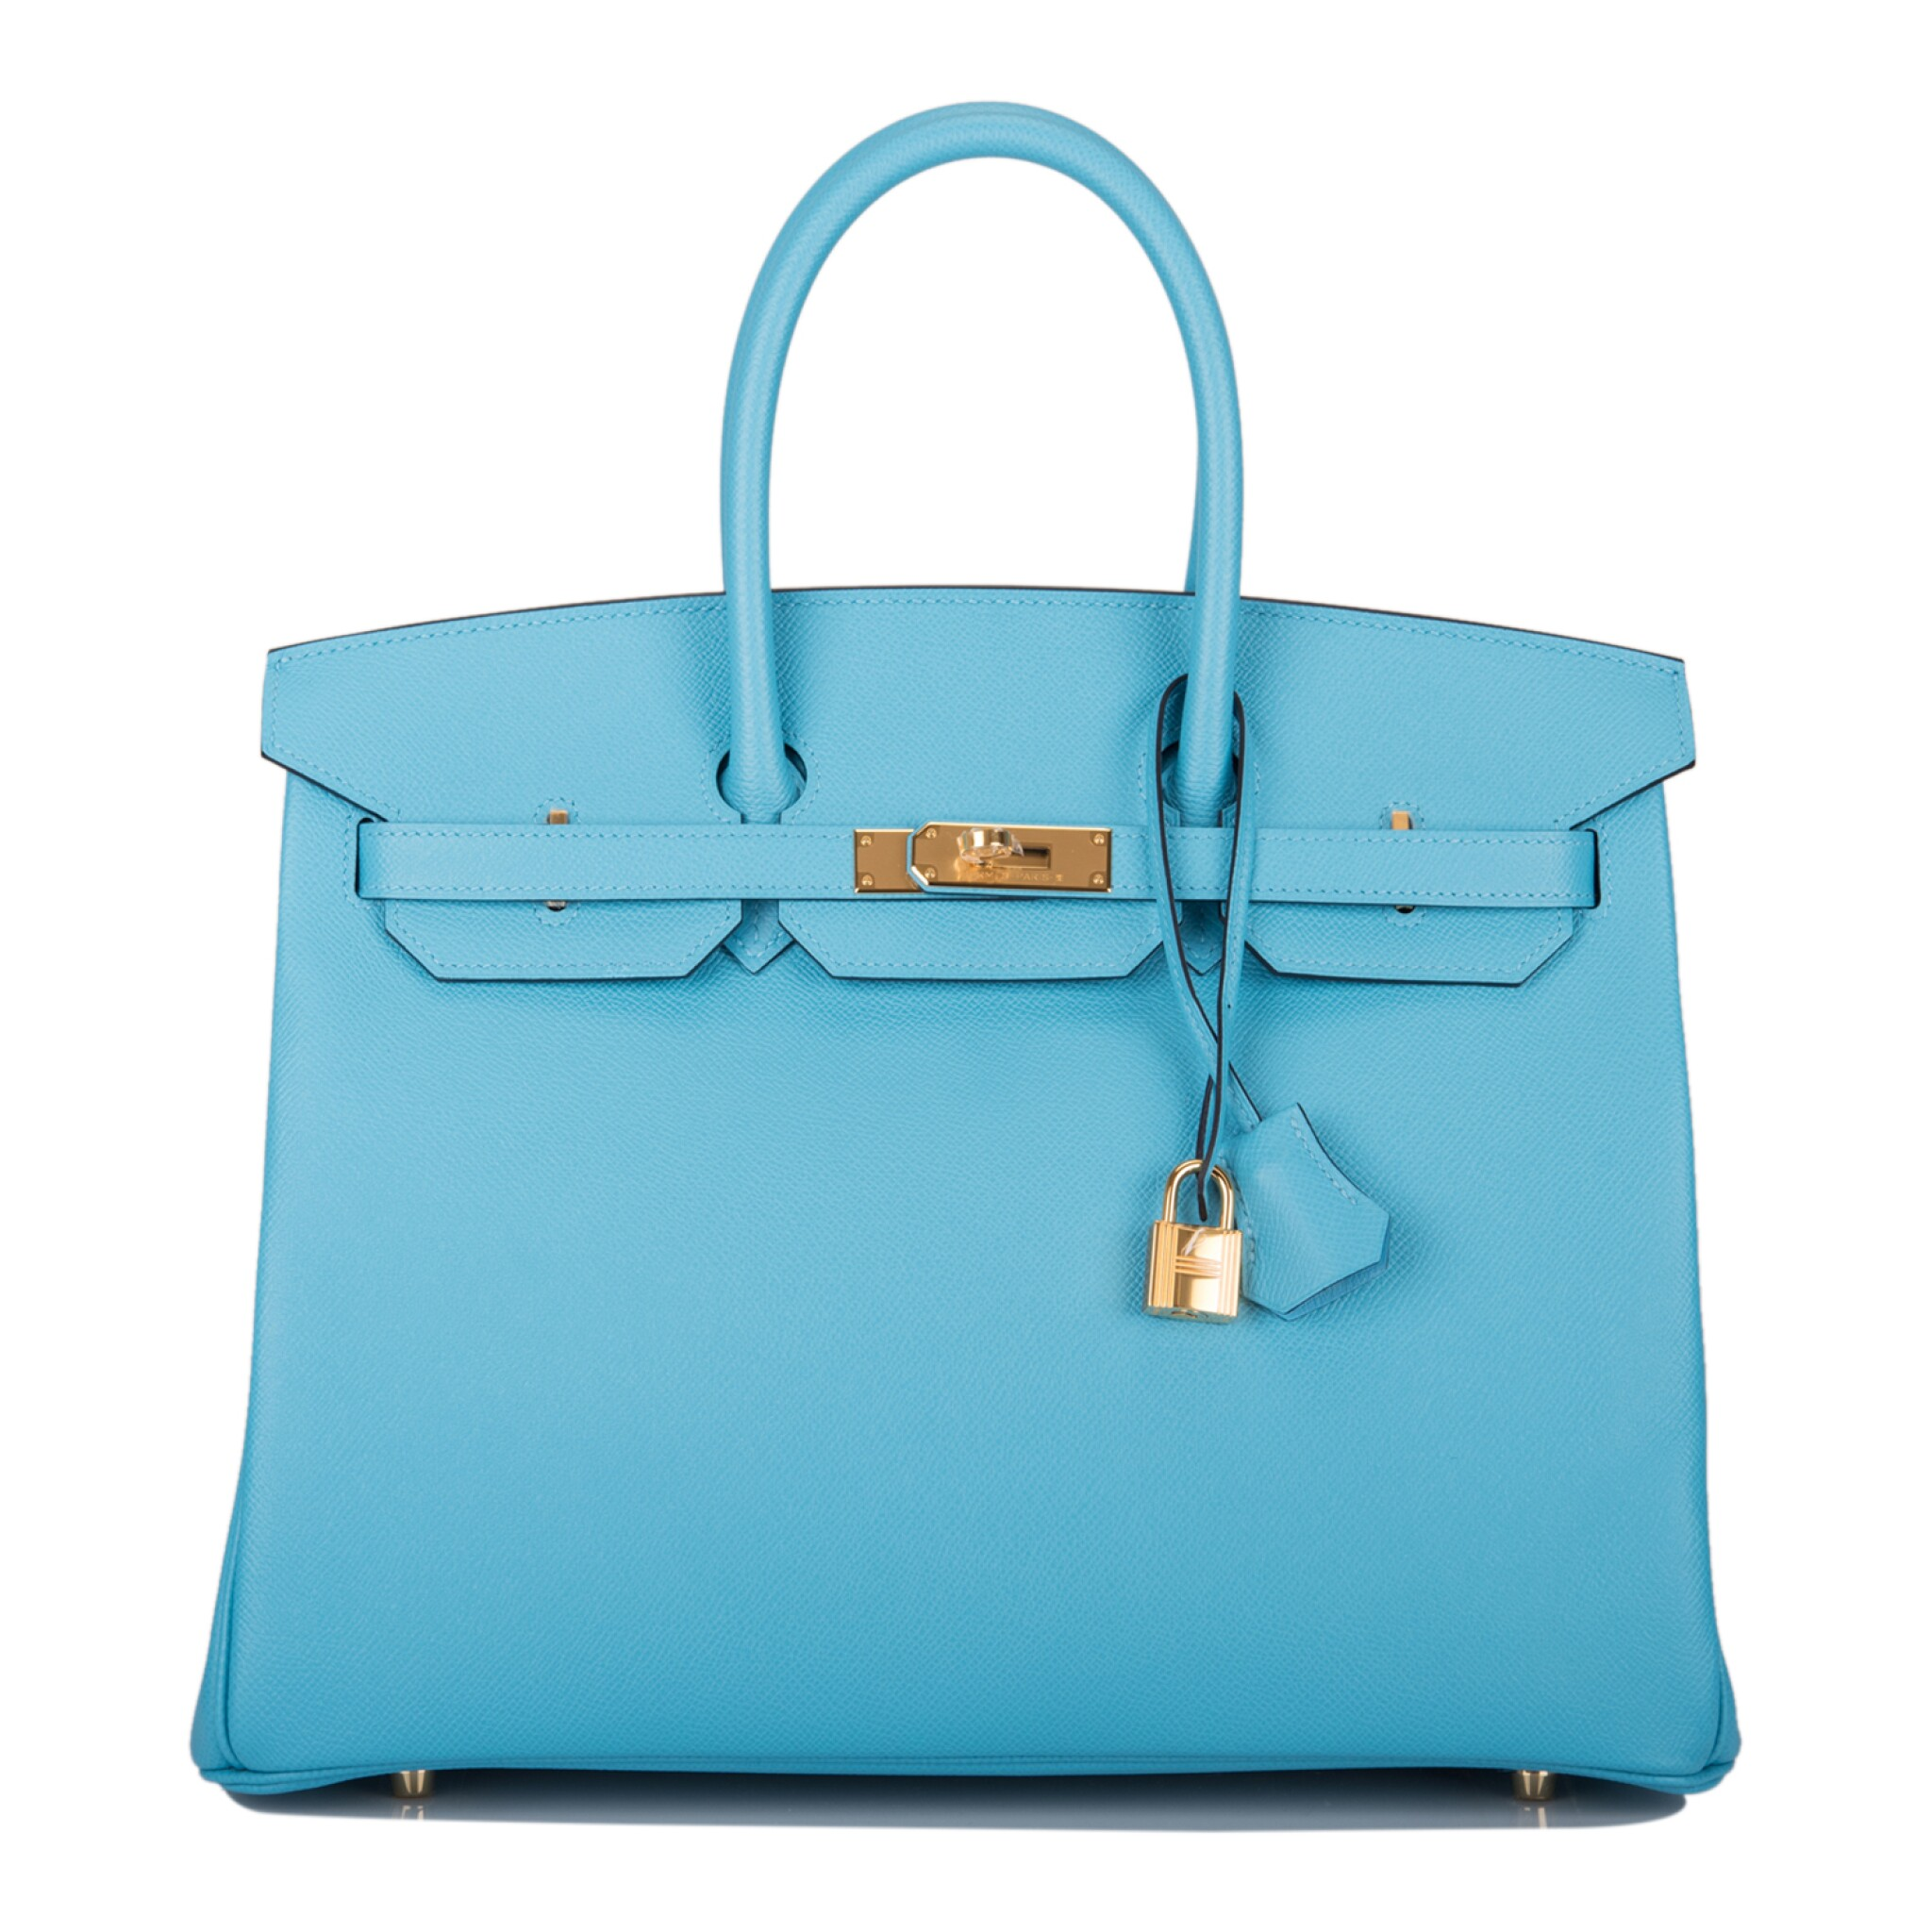 View full screen - View 1 of Lot 15. Hermès Bleu du Nord Birkin 35cm of Epsom Leather with Gold Hardware.